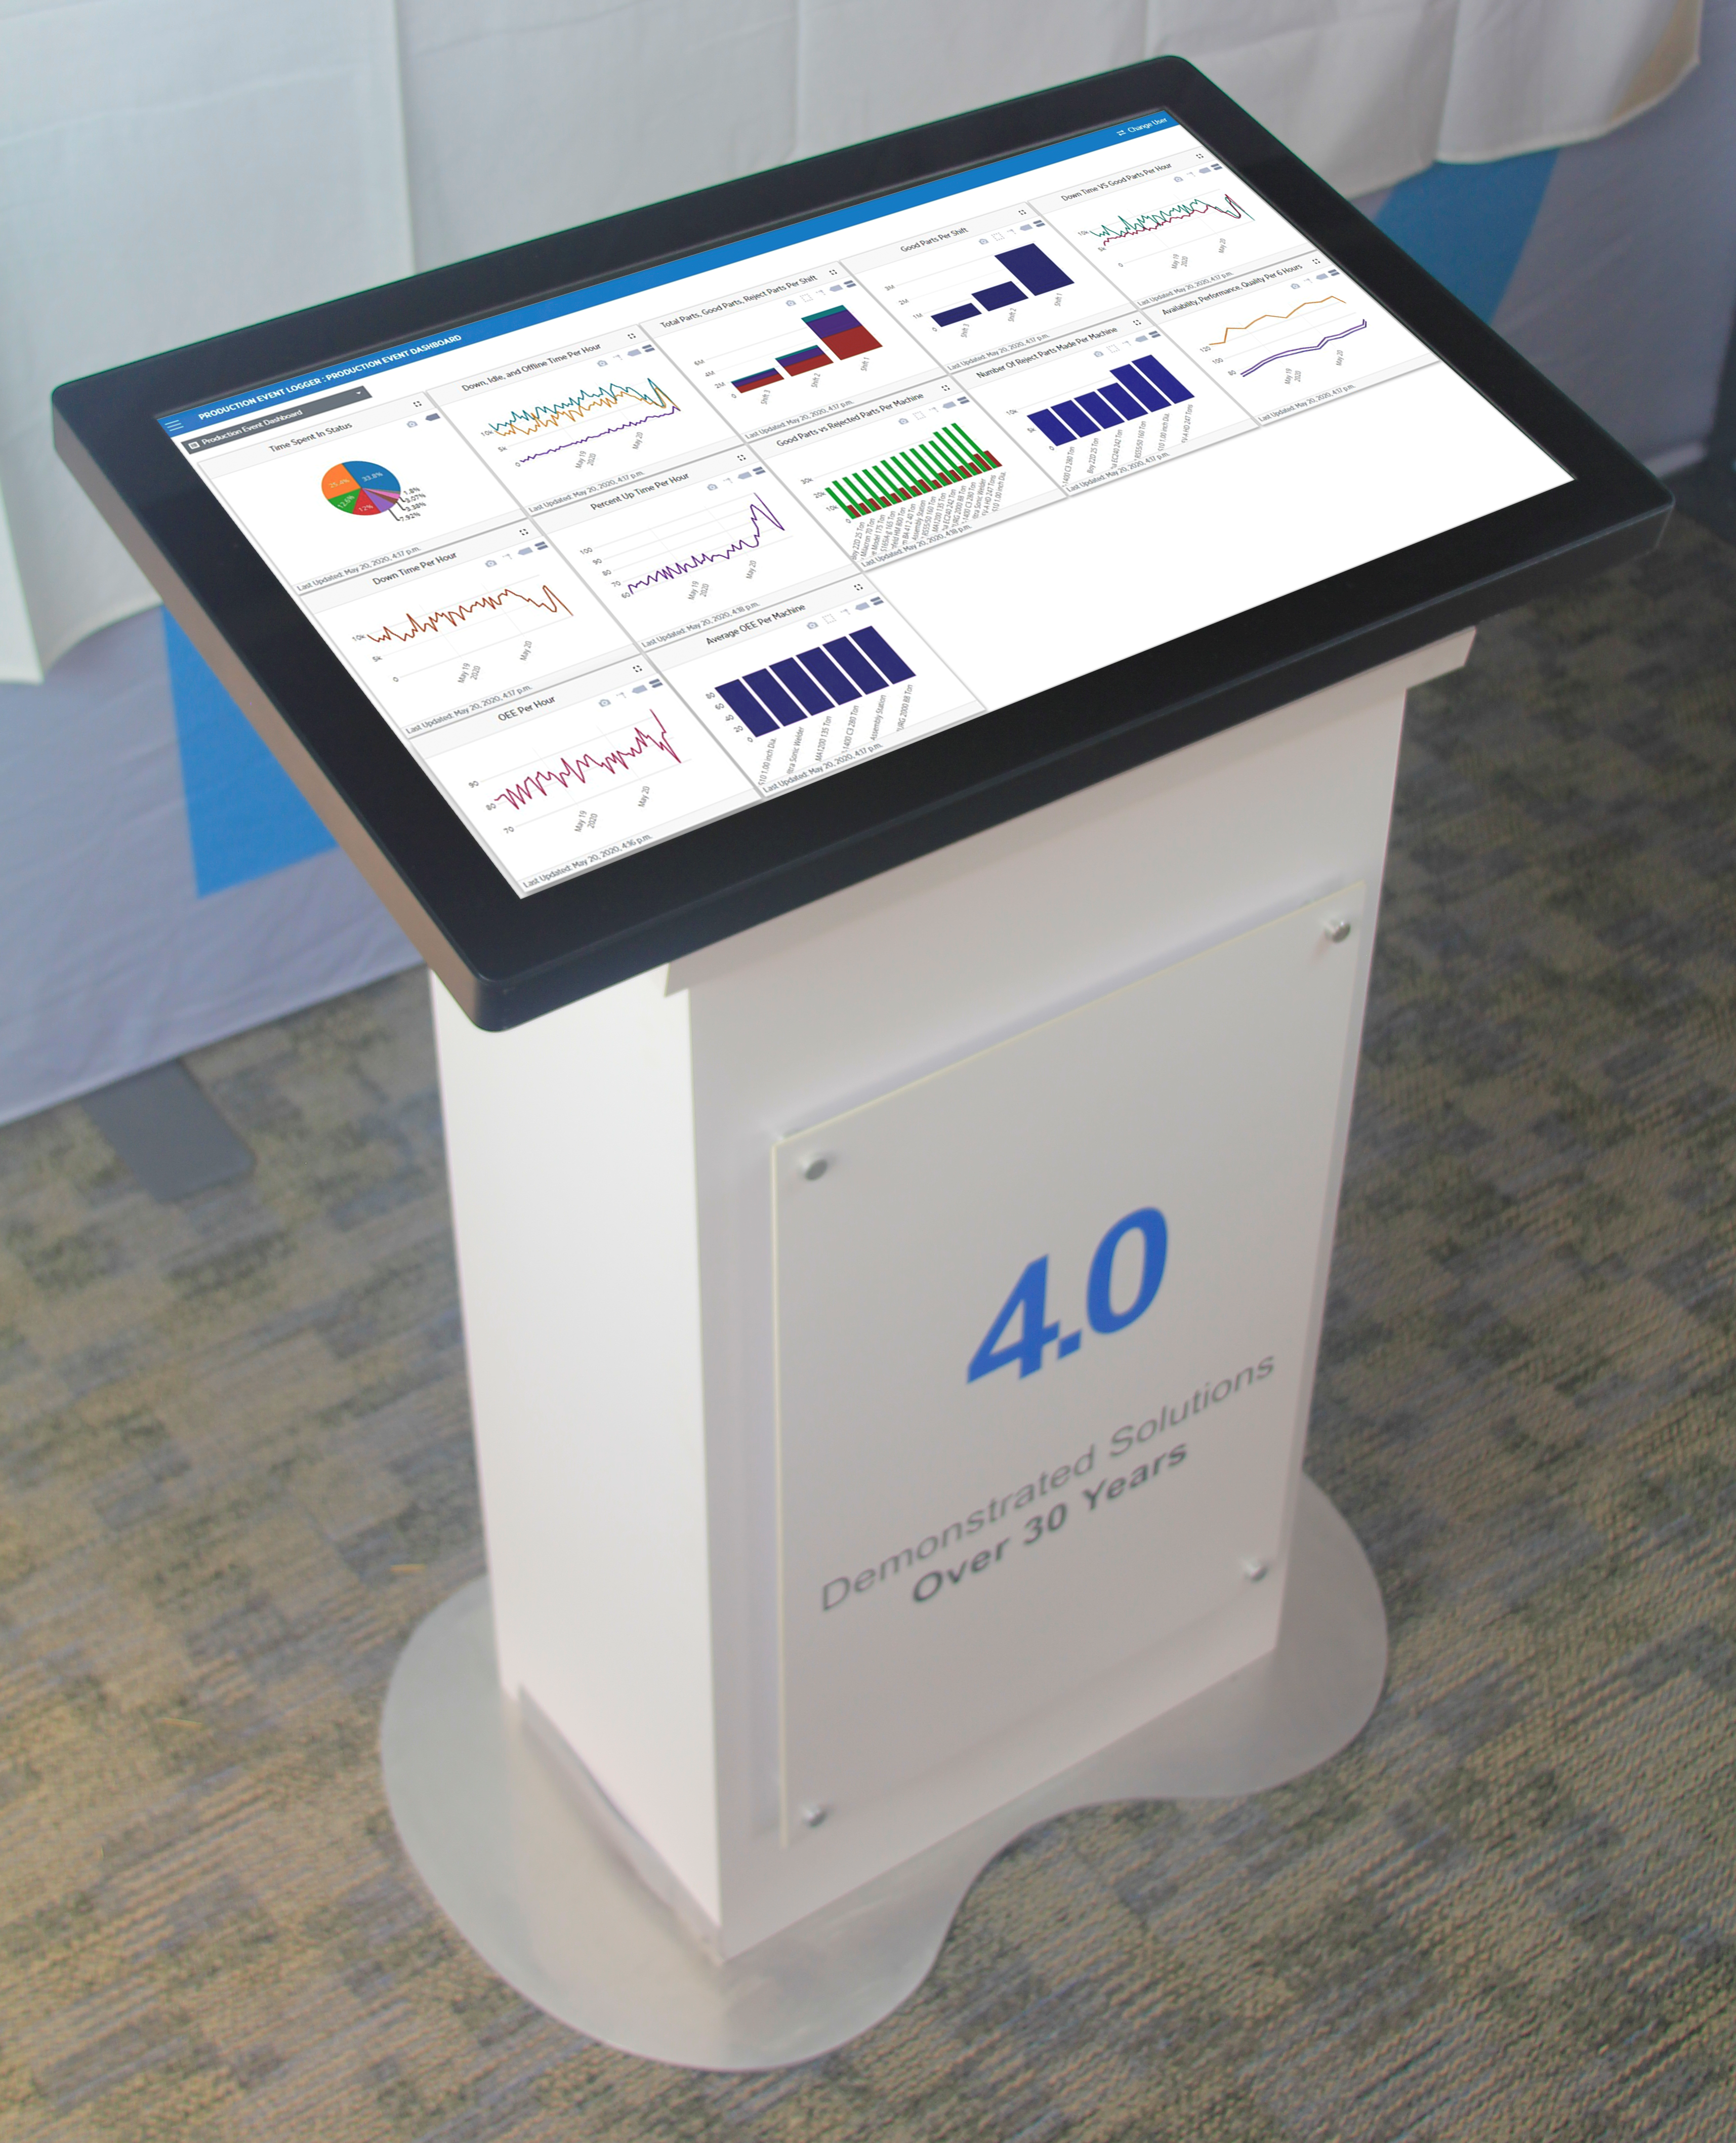 large touch screen on stand